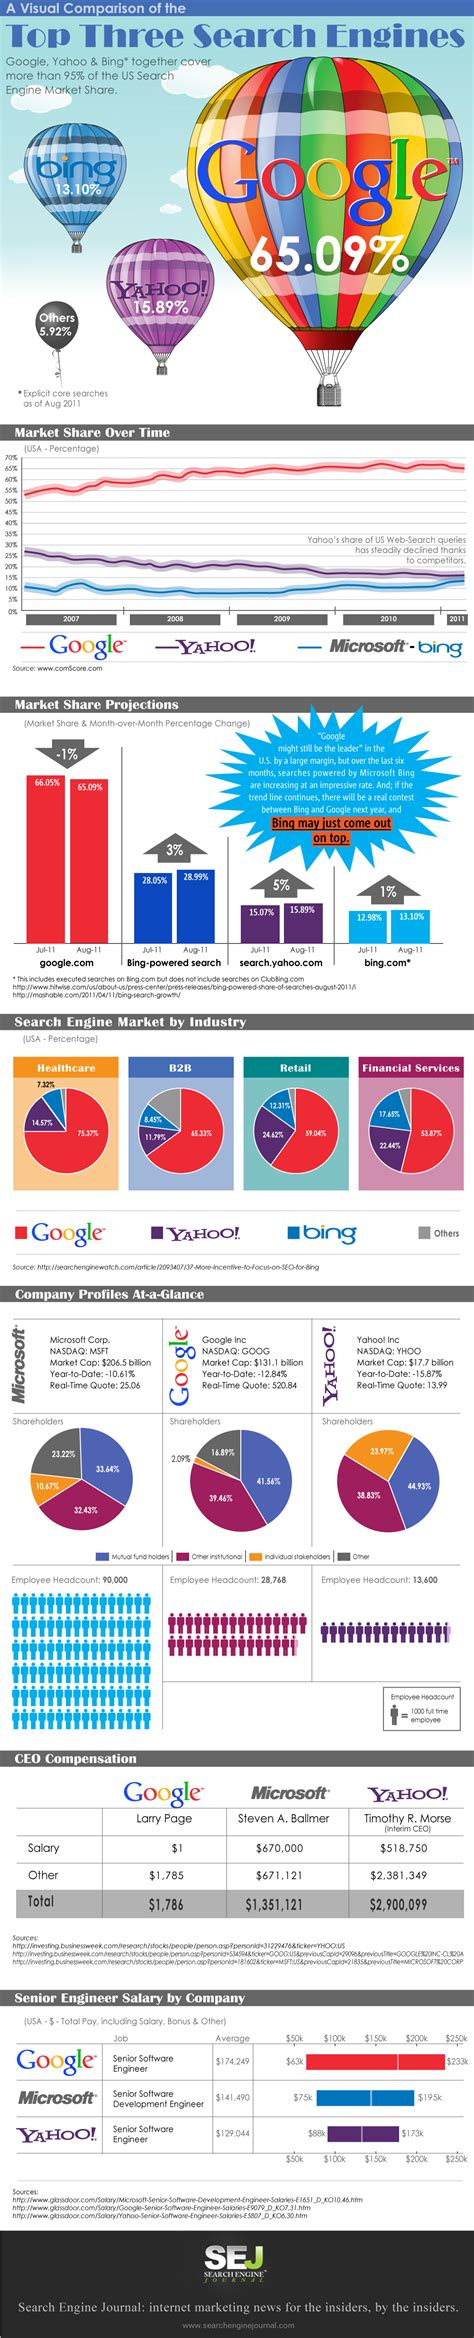 Top Search Engines Infographic The Top Three Us Search Engines